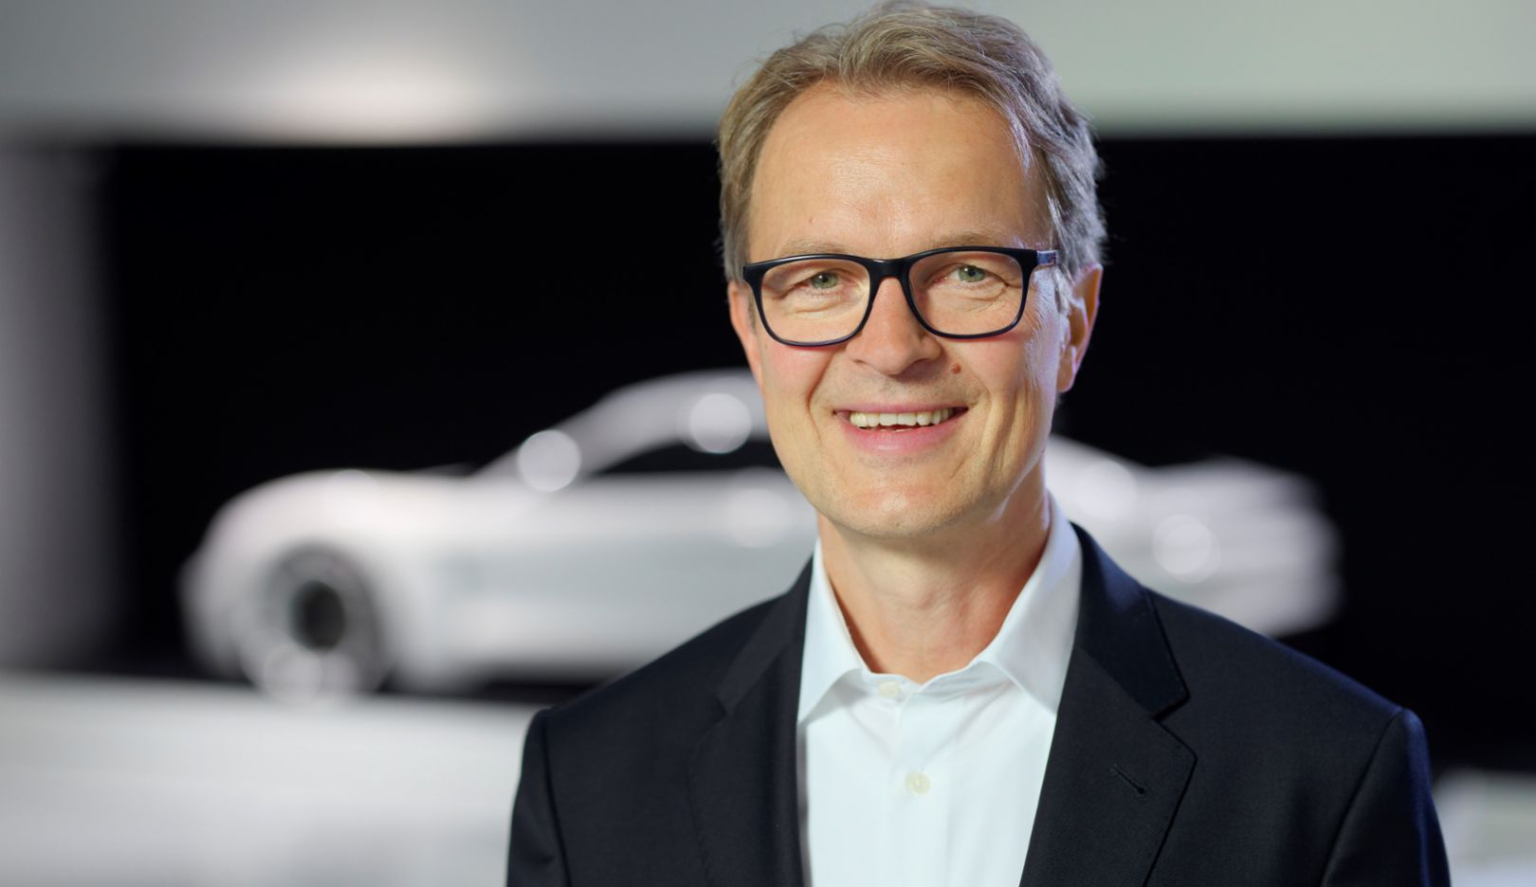 Dr. Kjell Gruner is President and CEO of Porsche Cars North America, Inc. (PCNA)